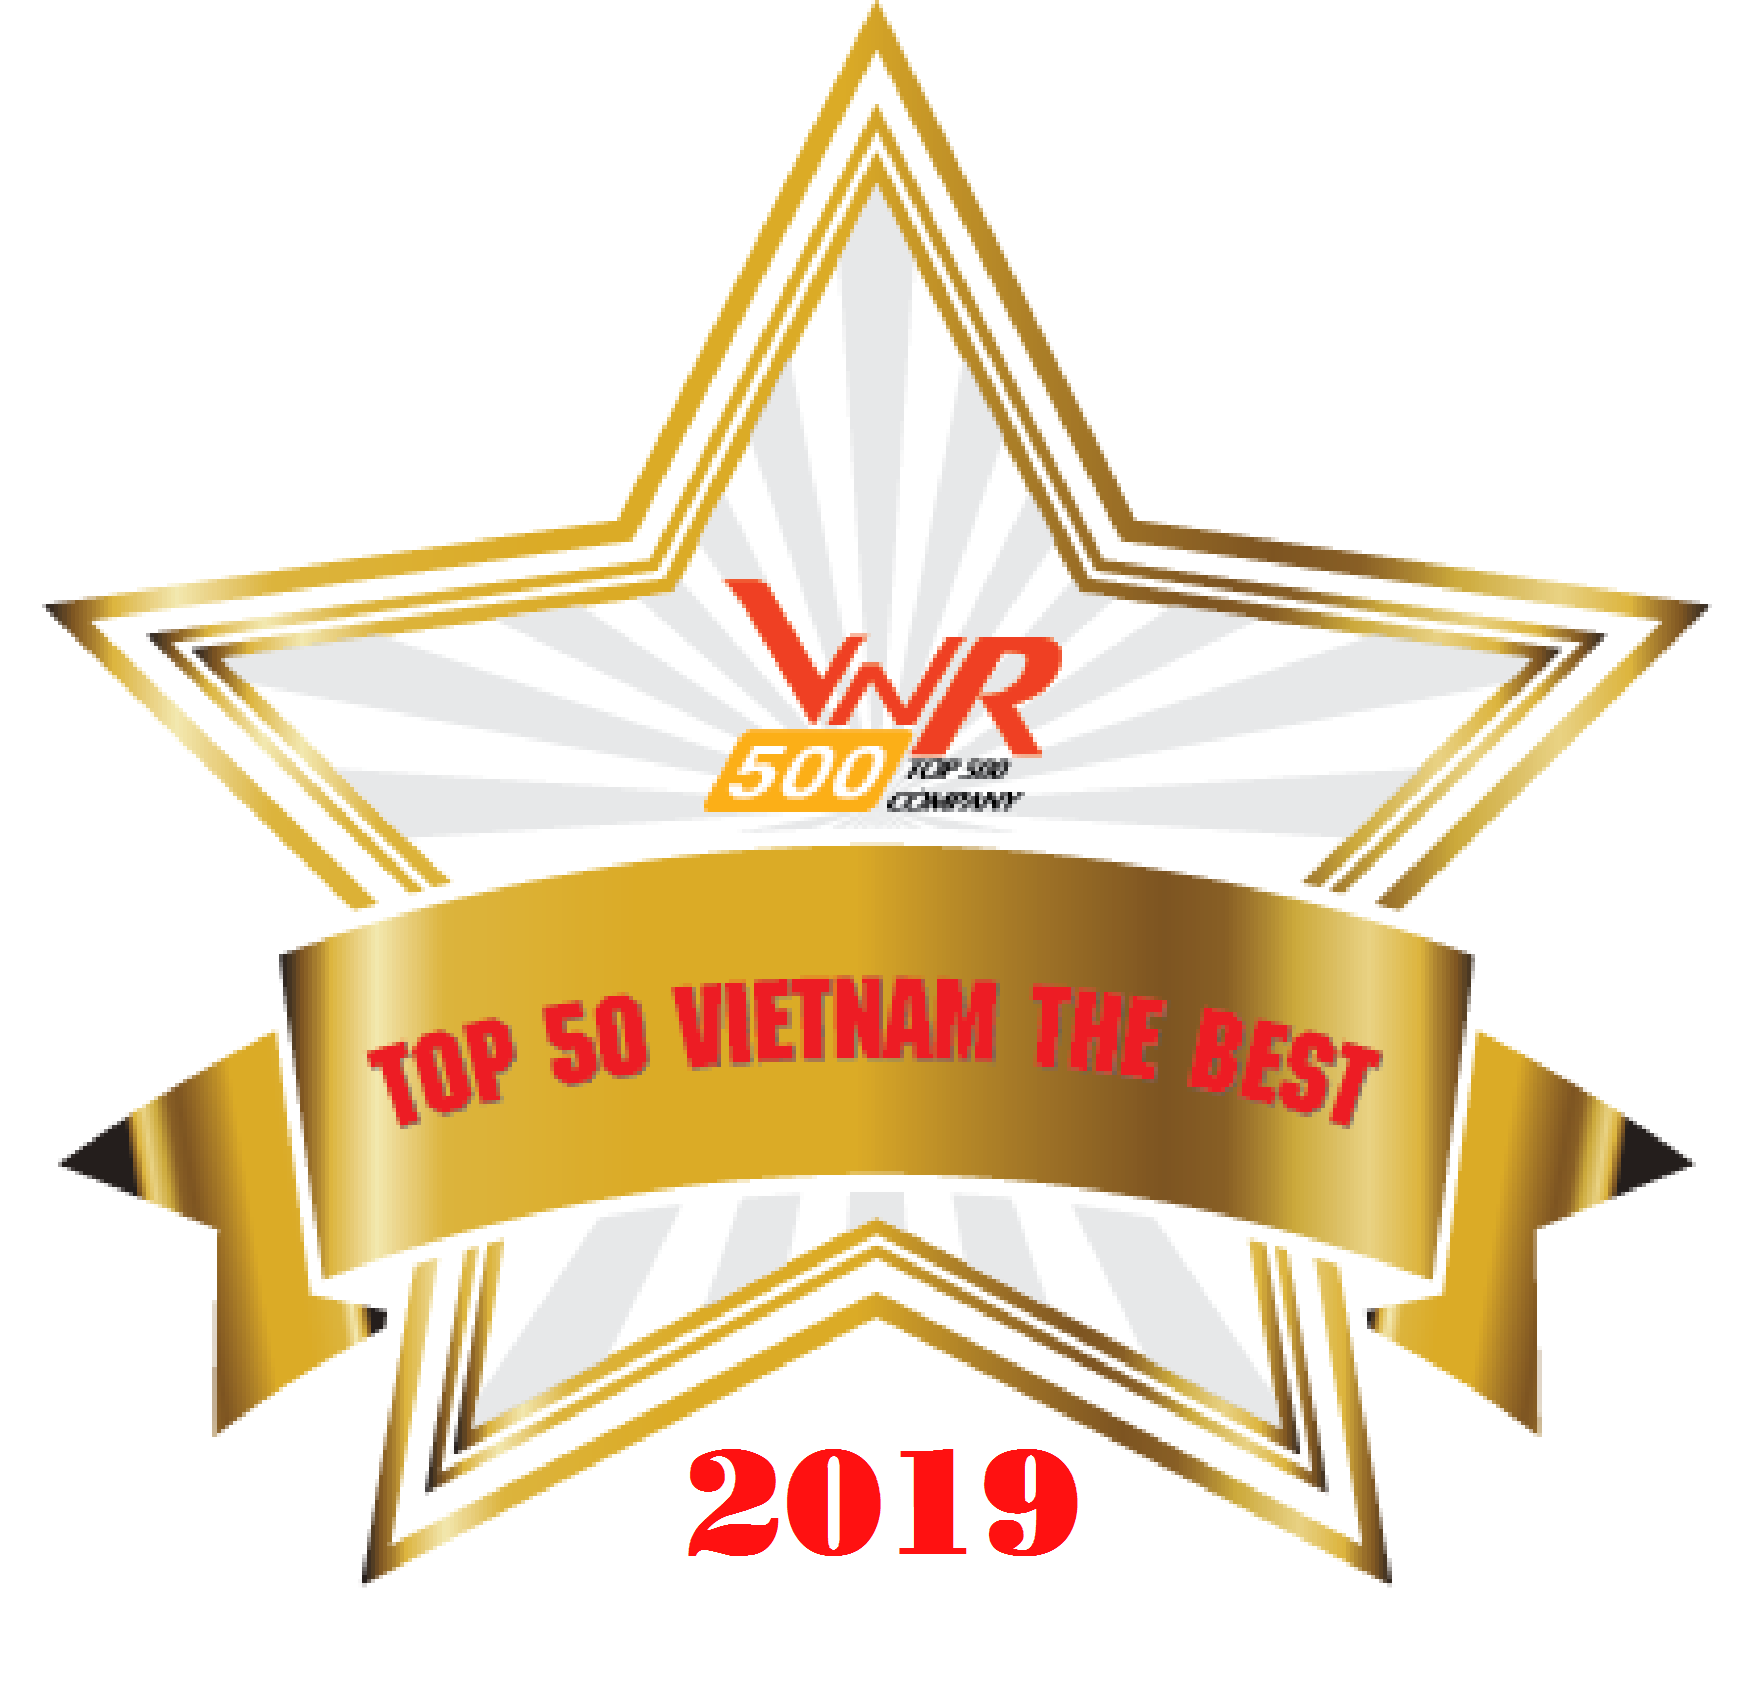 Top 50 Vietnam The Best 2019